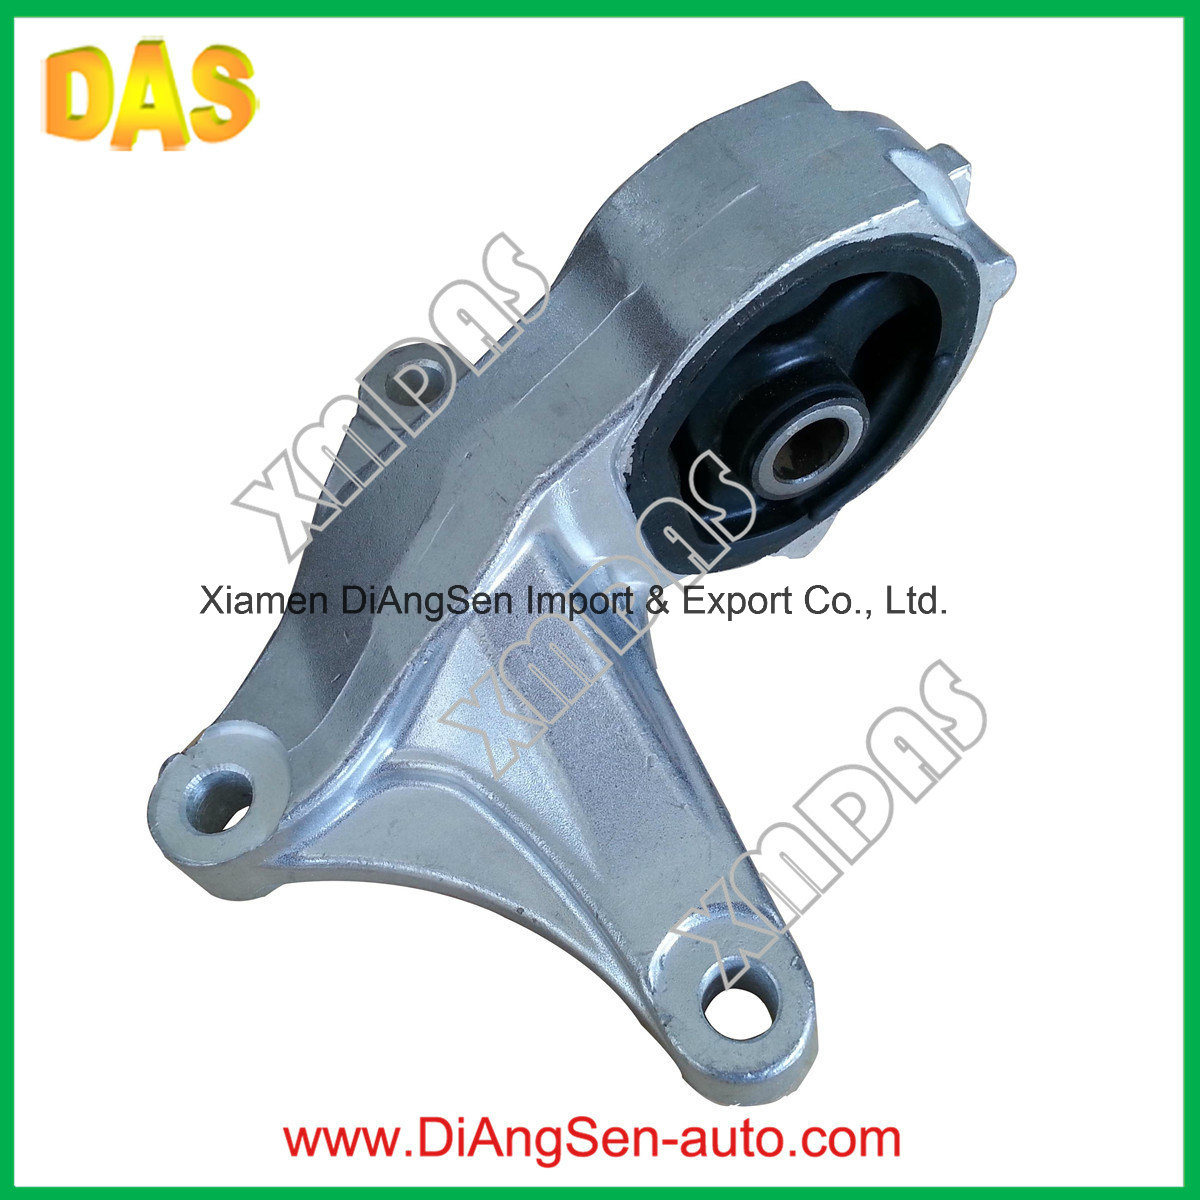 China Wholesell Auto Parts Engine Mounting For Japanese Car Honda 2004 Crv Discount Factory Oem And 50830 T0t H81 Motor